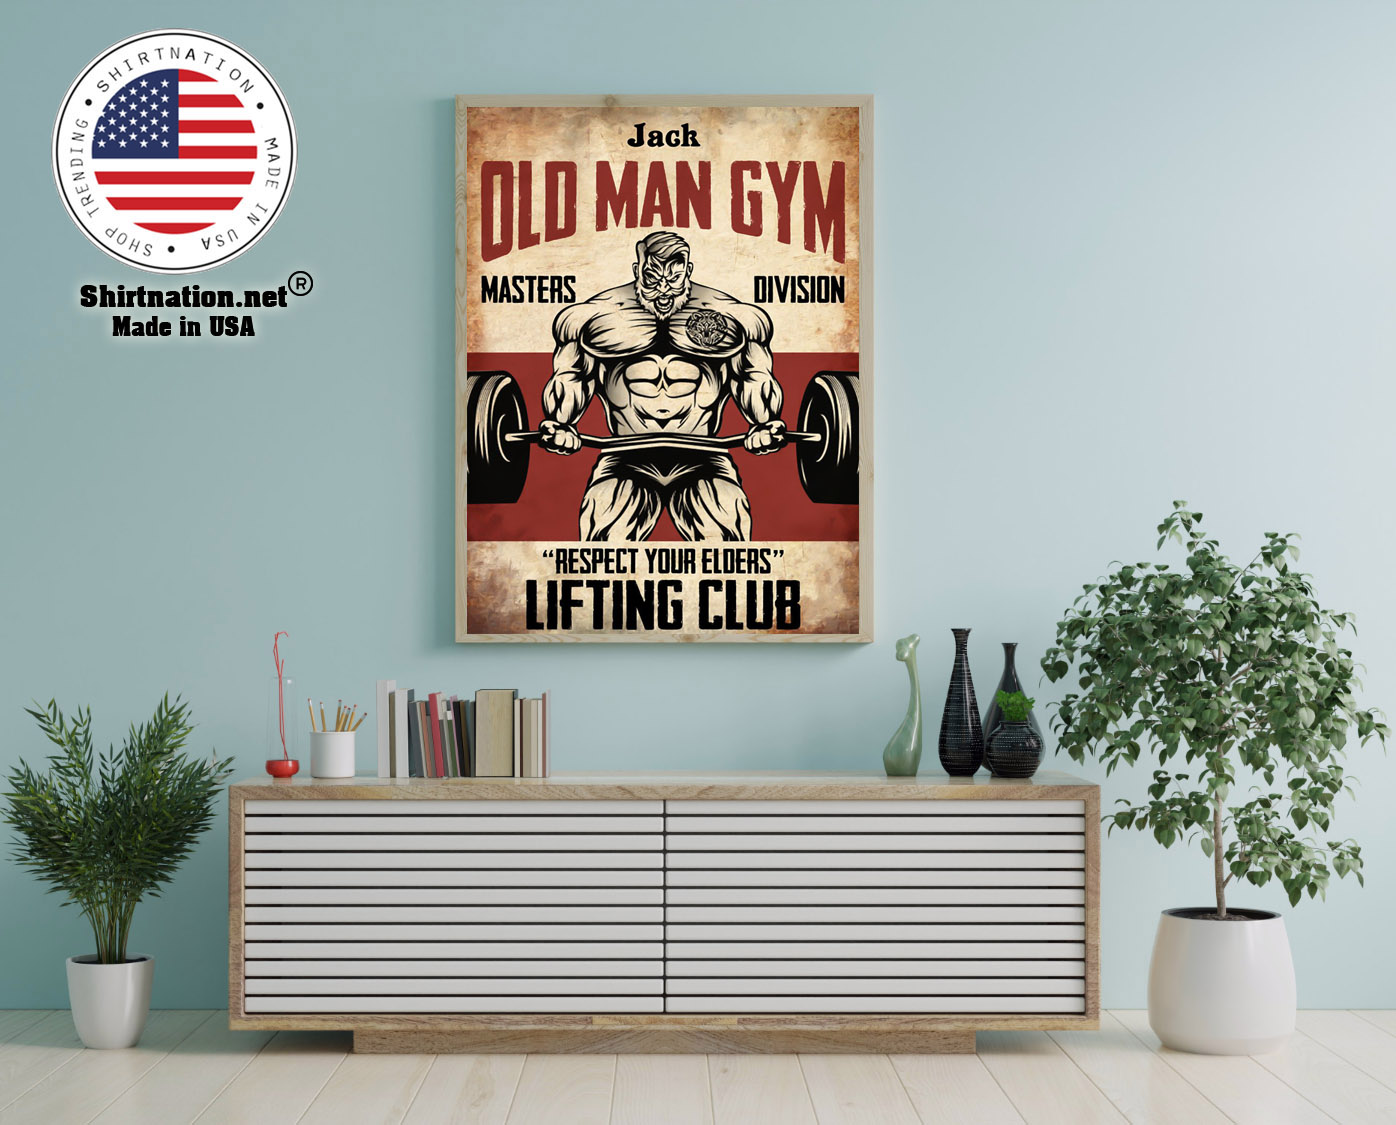 Old man gym masters division respect your elders lifting club poster 12 1